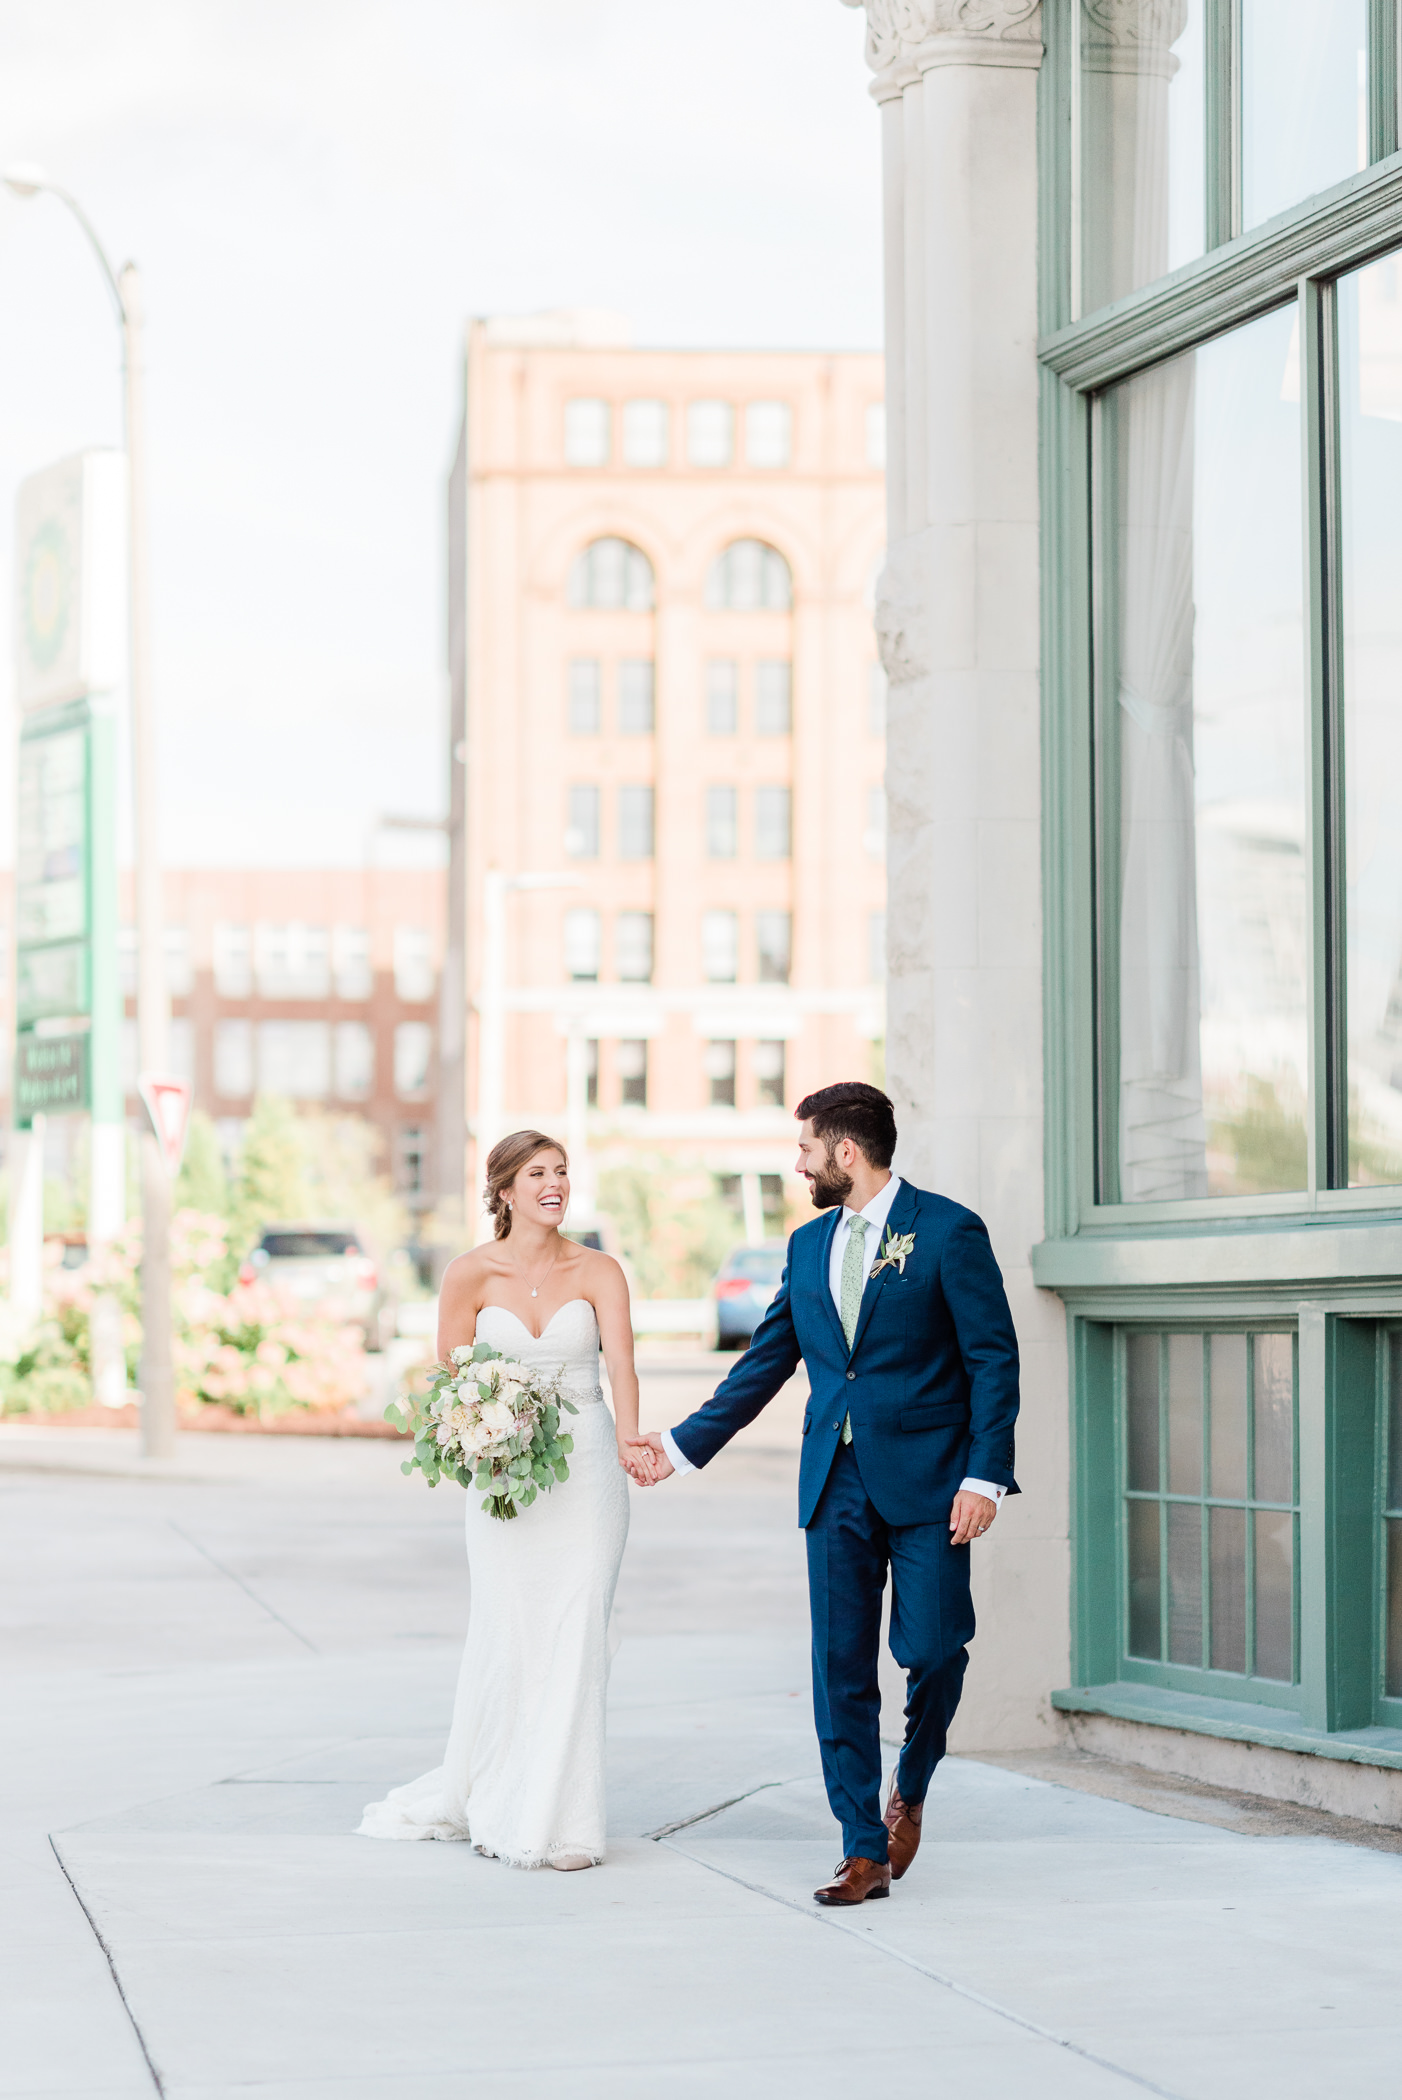 Pritzlaff Wedding Photographers - Larissa Marie Photography